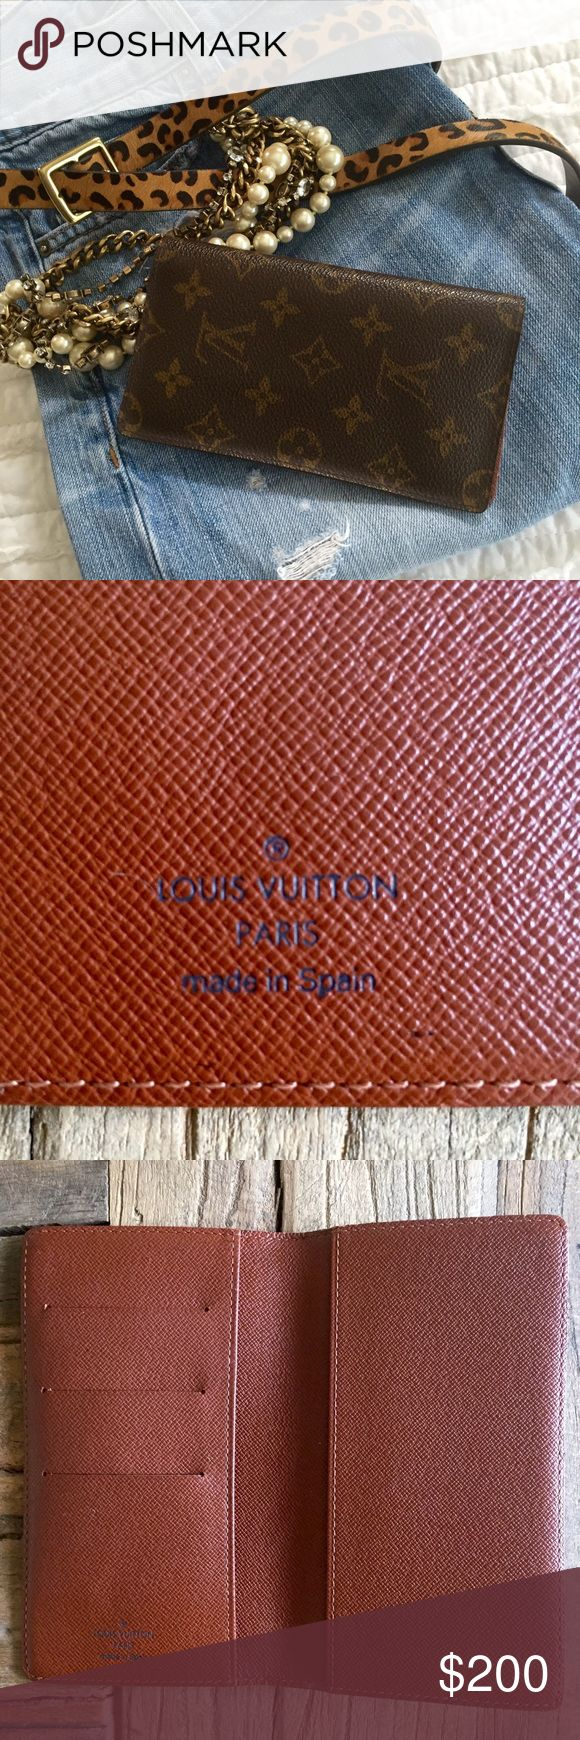 Louis Vuitton Wallet This is a checkbook cover/ with slots for drivers license and credit cards, also a place for cash. I got this as a gift and it has been sitting in a drawer unused for a few years, basically I forgot about it. EUC it is in Pristine Condition, no box or dust bag. Open to REASONABLE OFFER😏 Louis Vuitton Bags Wallets